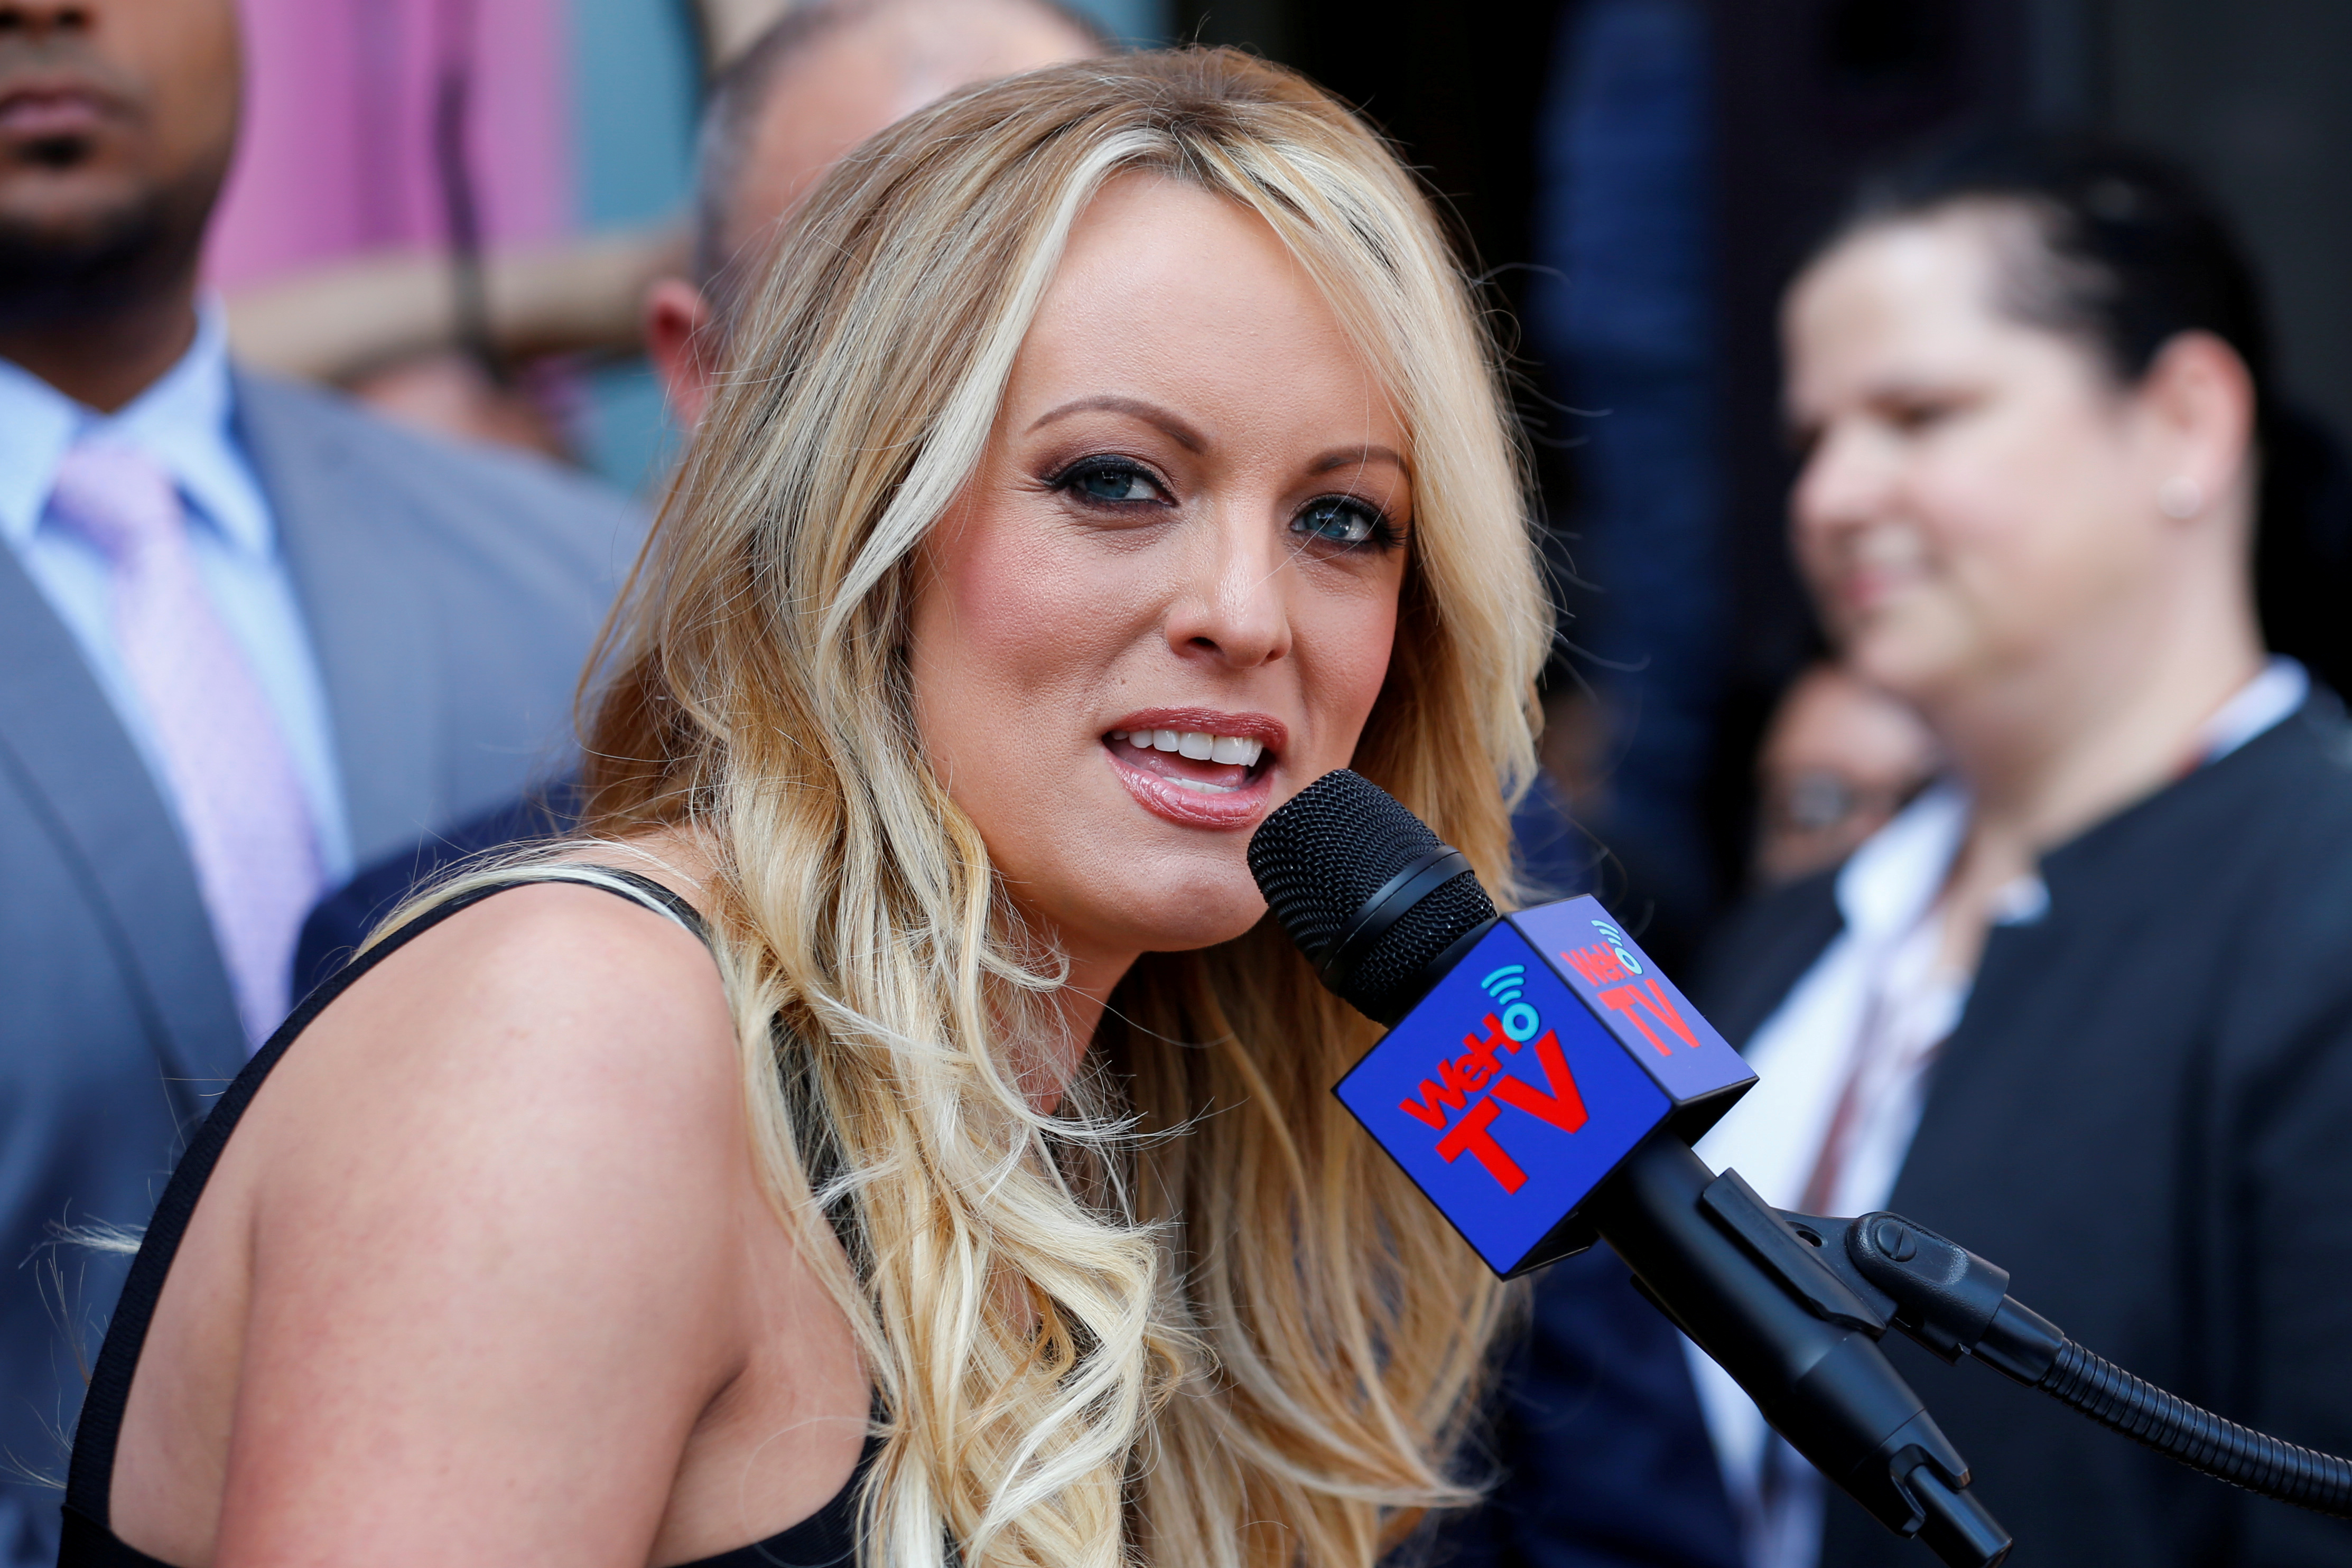 FILE - Stormy Daniels, the porn star currently in legal battles with U.S. President Donald Trump, speaks during a ceremony in her honor in West Hollywood, California, May 23, 2018.